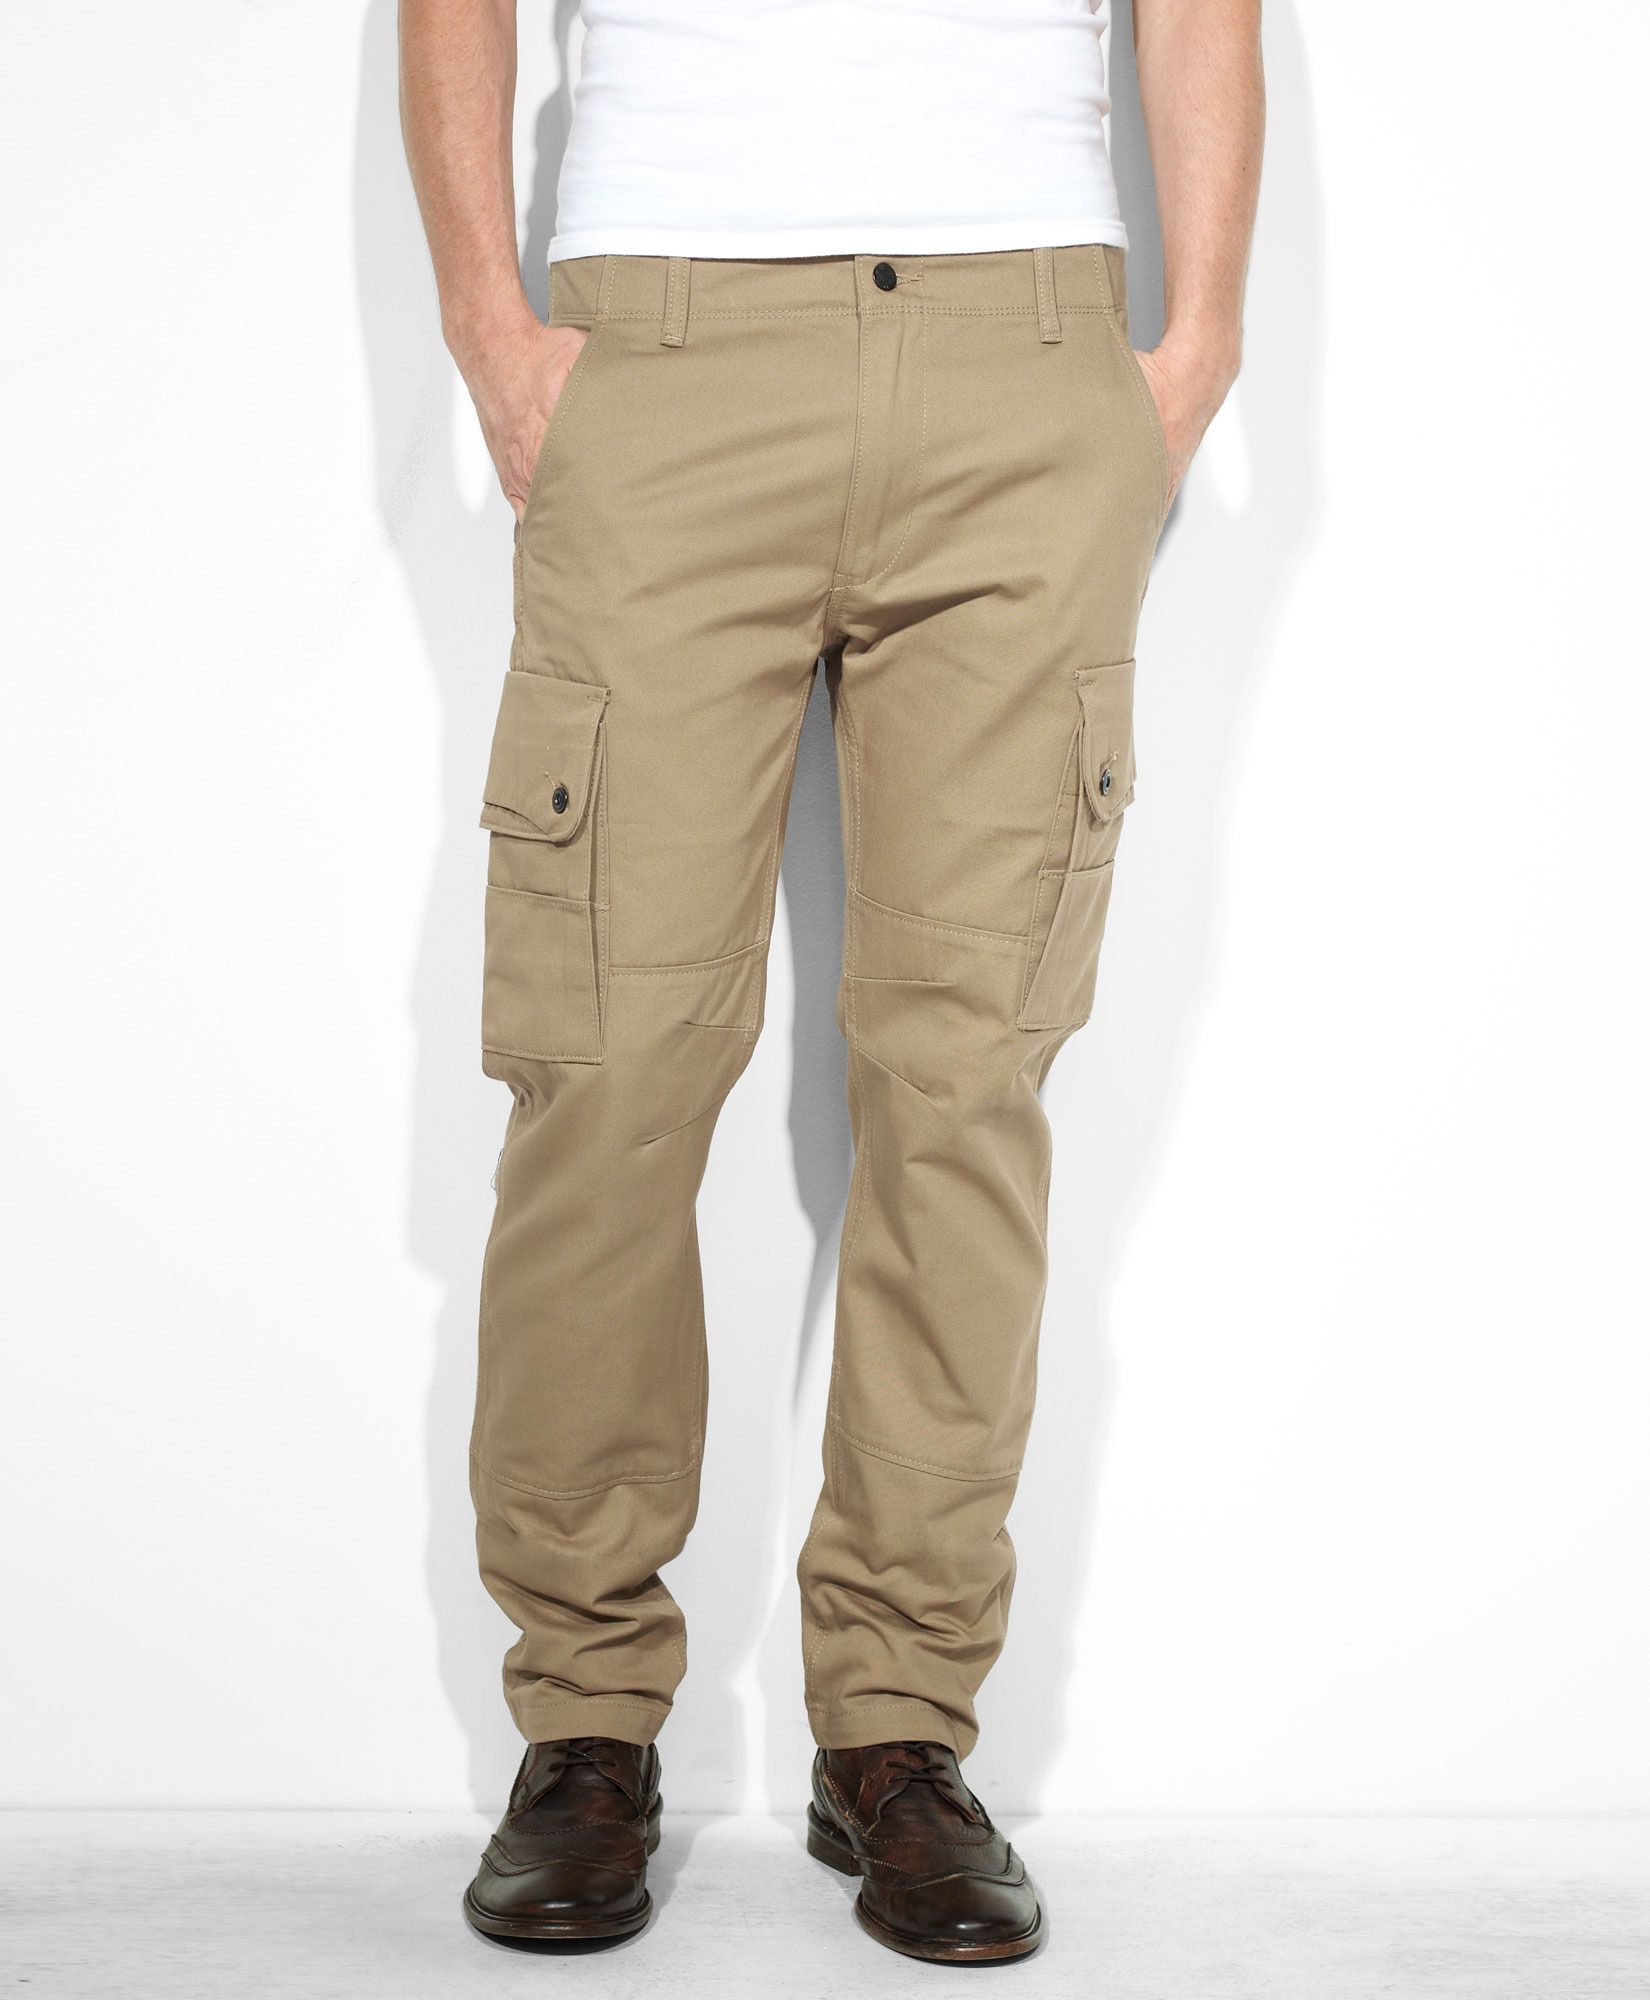 Levi's 508™ Regular Taper Cargo Pants - True Chino - Jeans